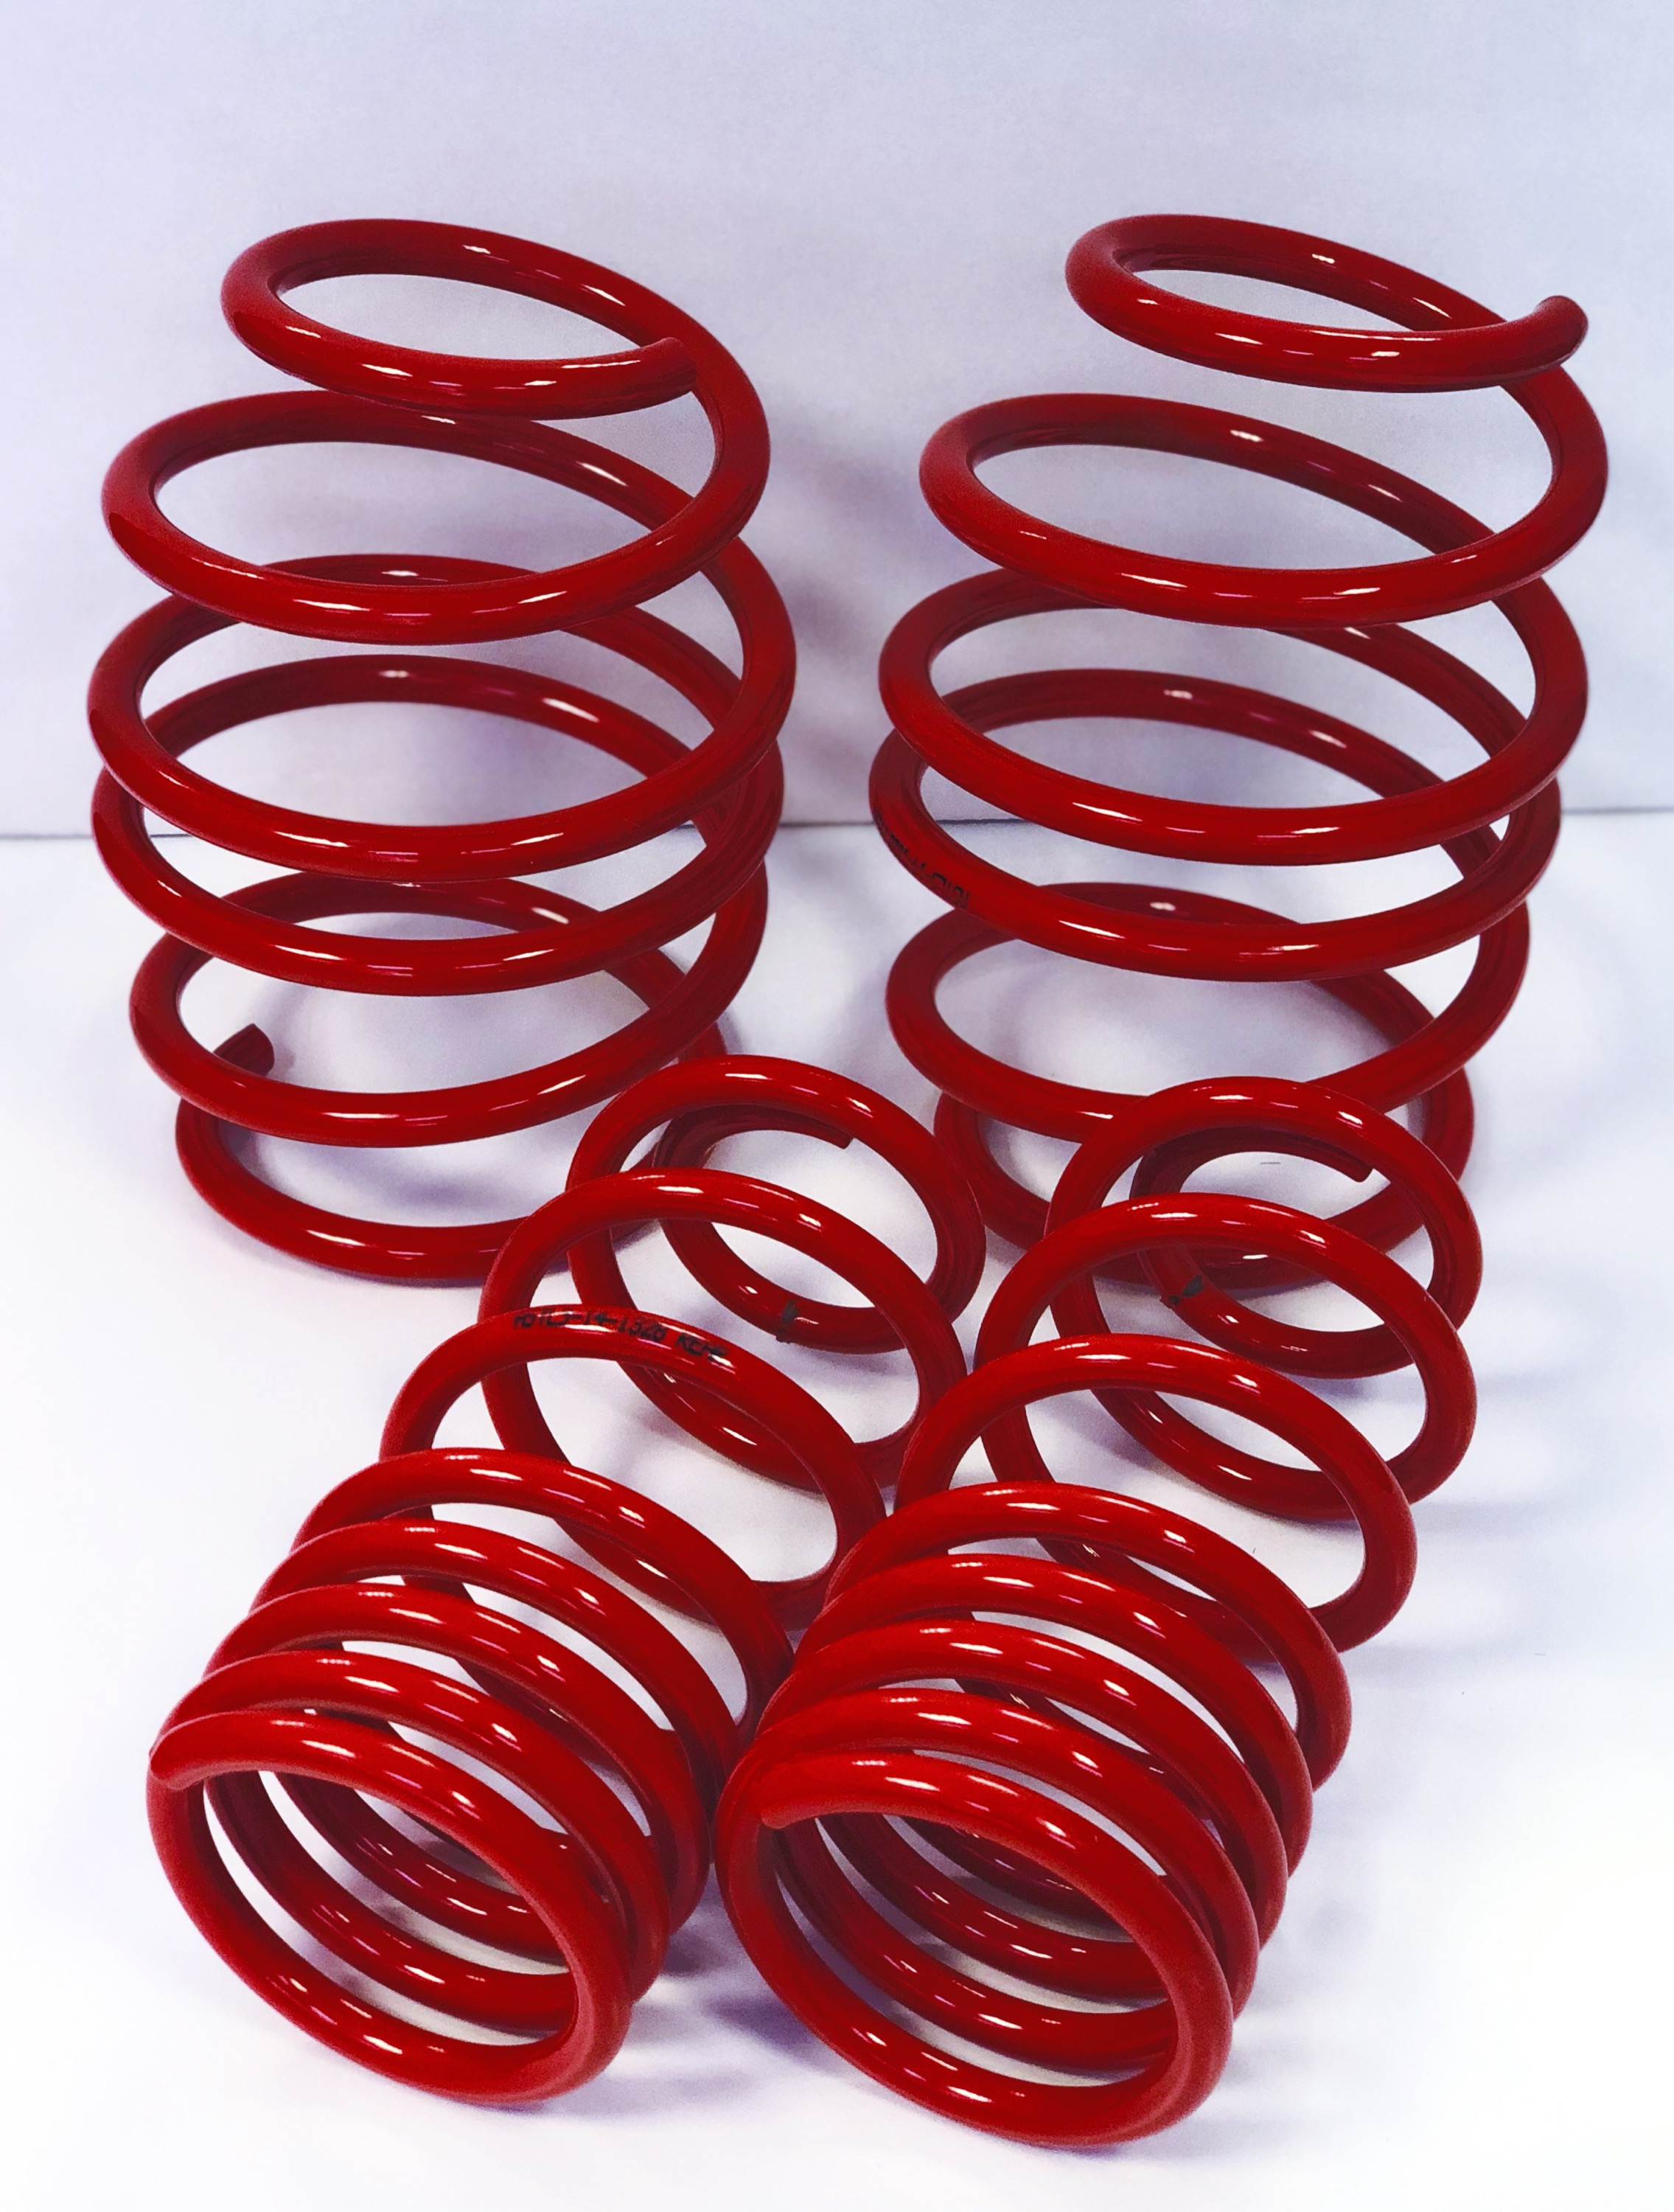 Seat LEON AST Suspension Lowering Springs 25MM